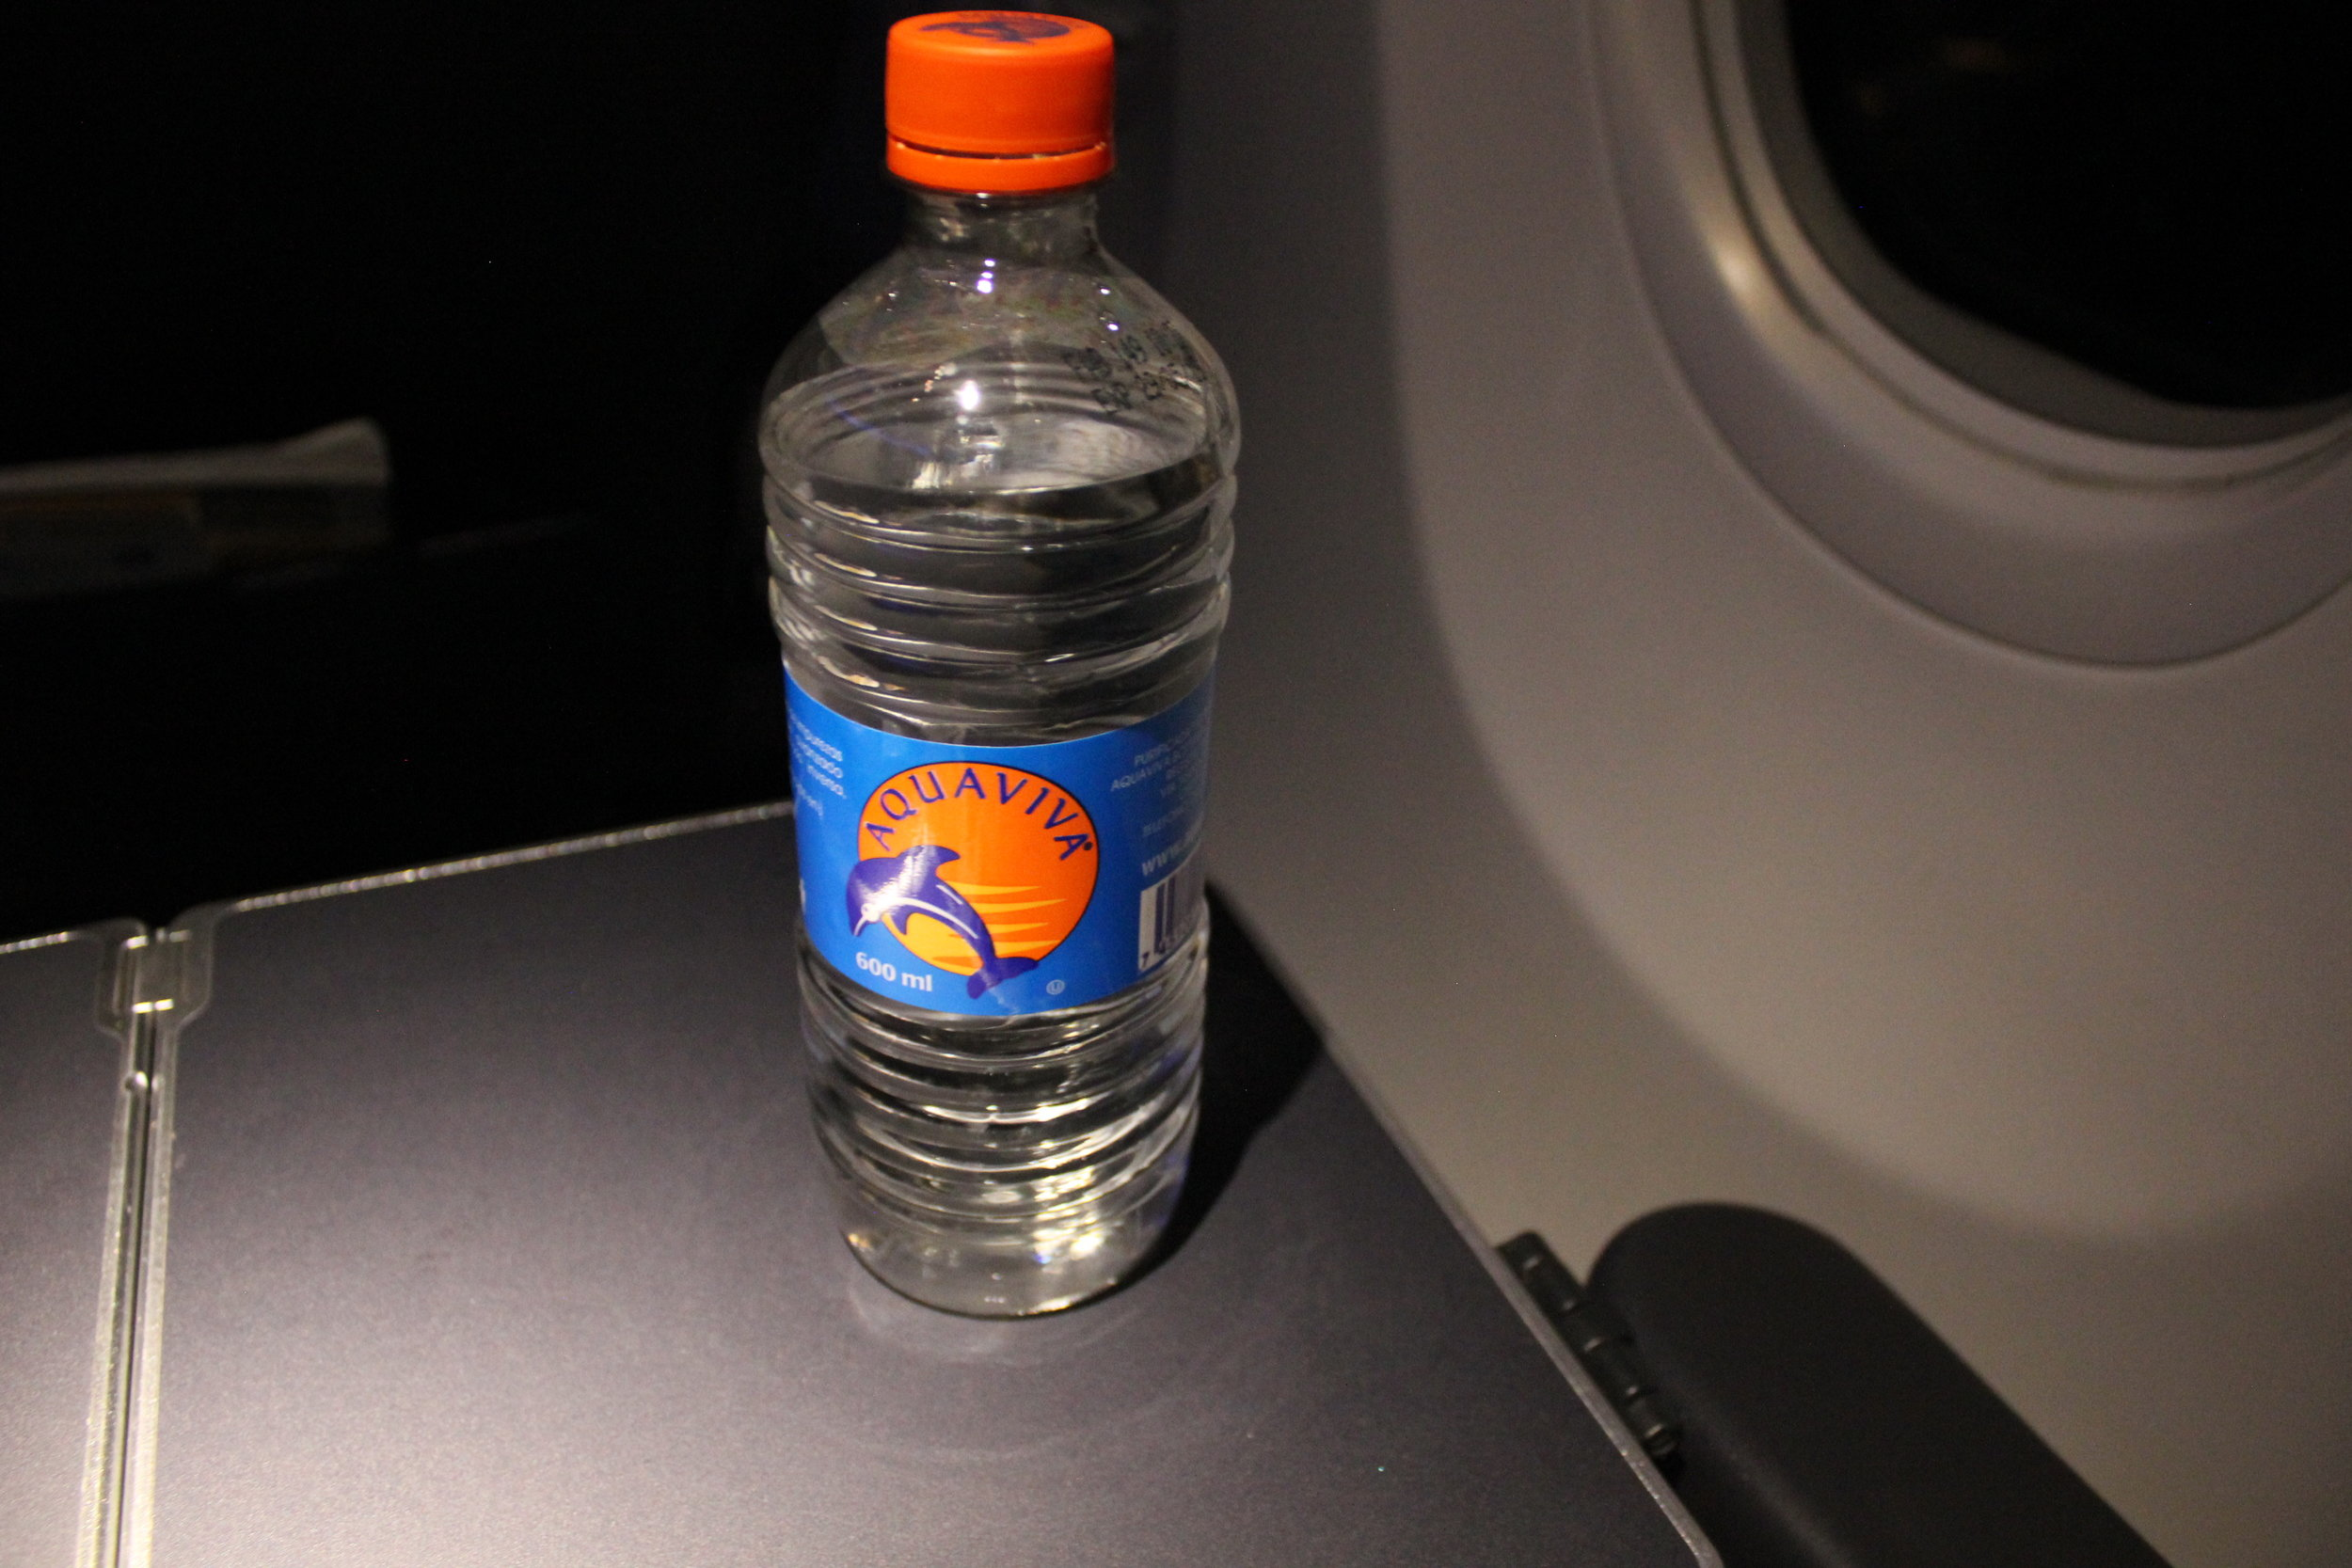 Copa Airlines business class – Bottled water